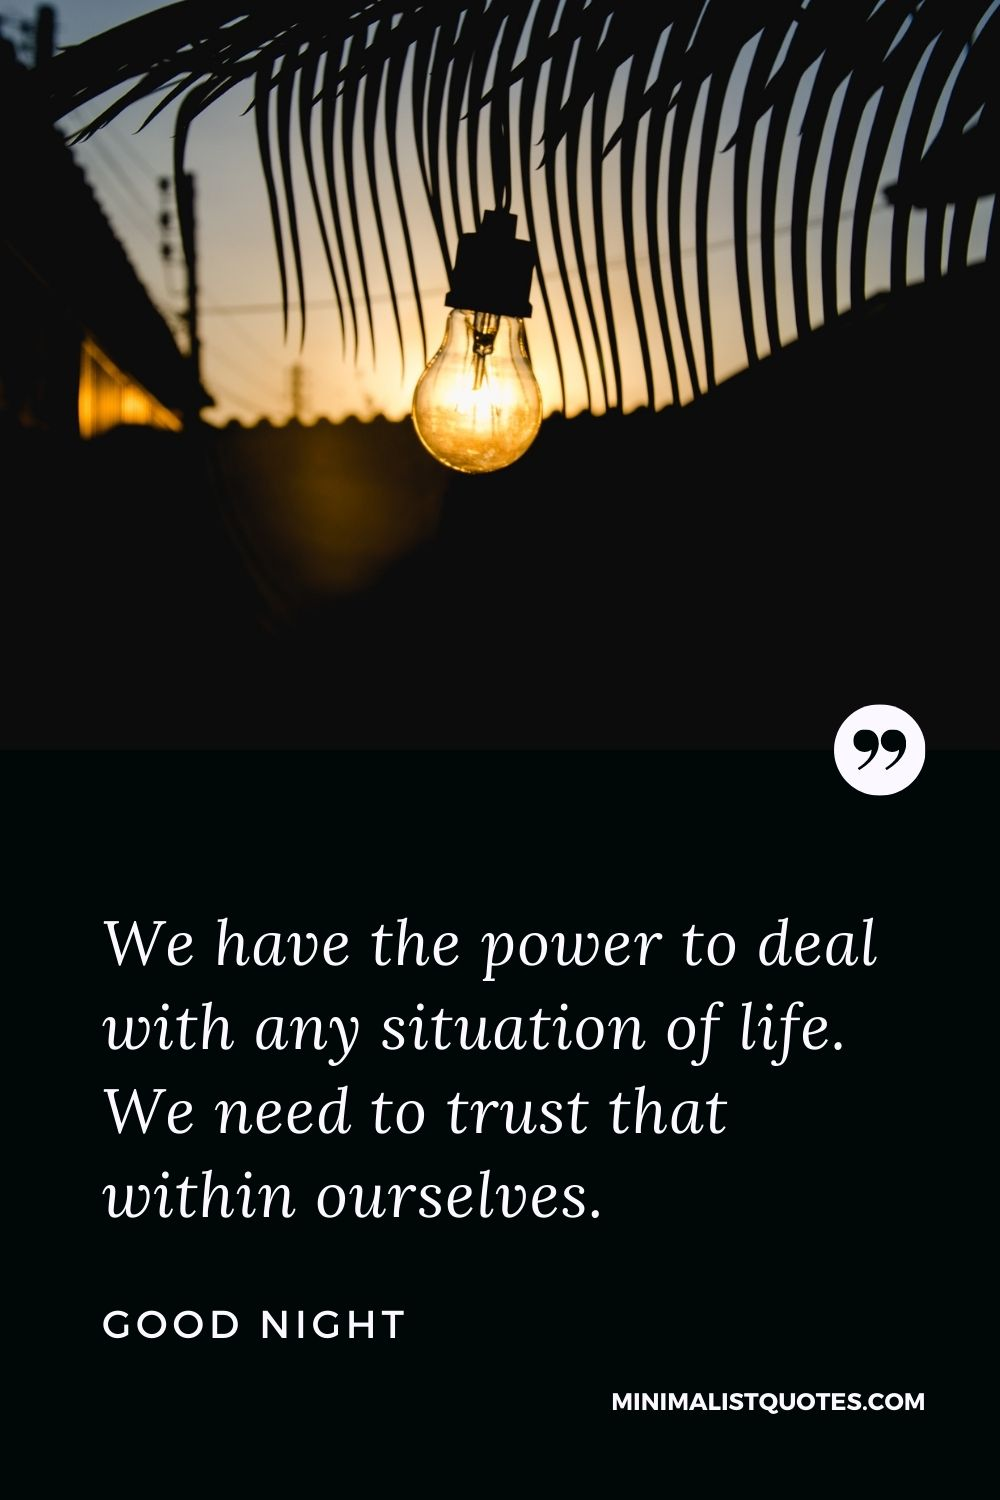 Good Night Wishes - We have the power to deal with any situation of life. We need to trust that within ourselves.